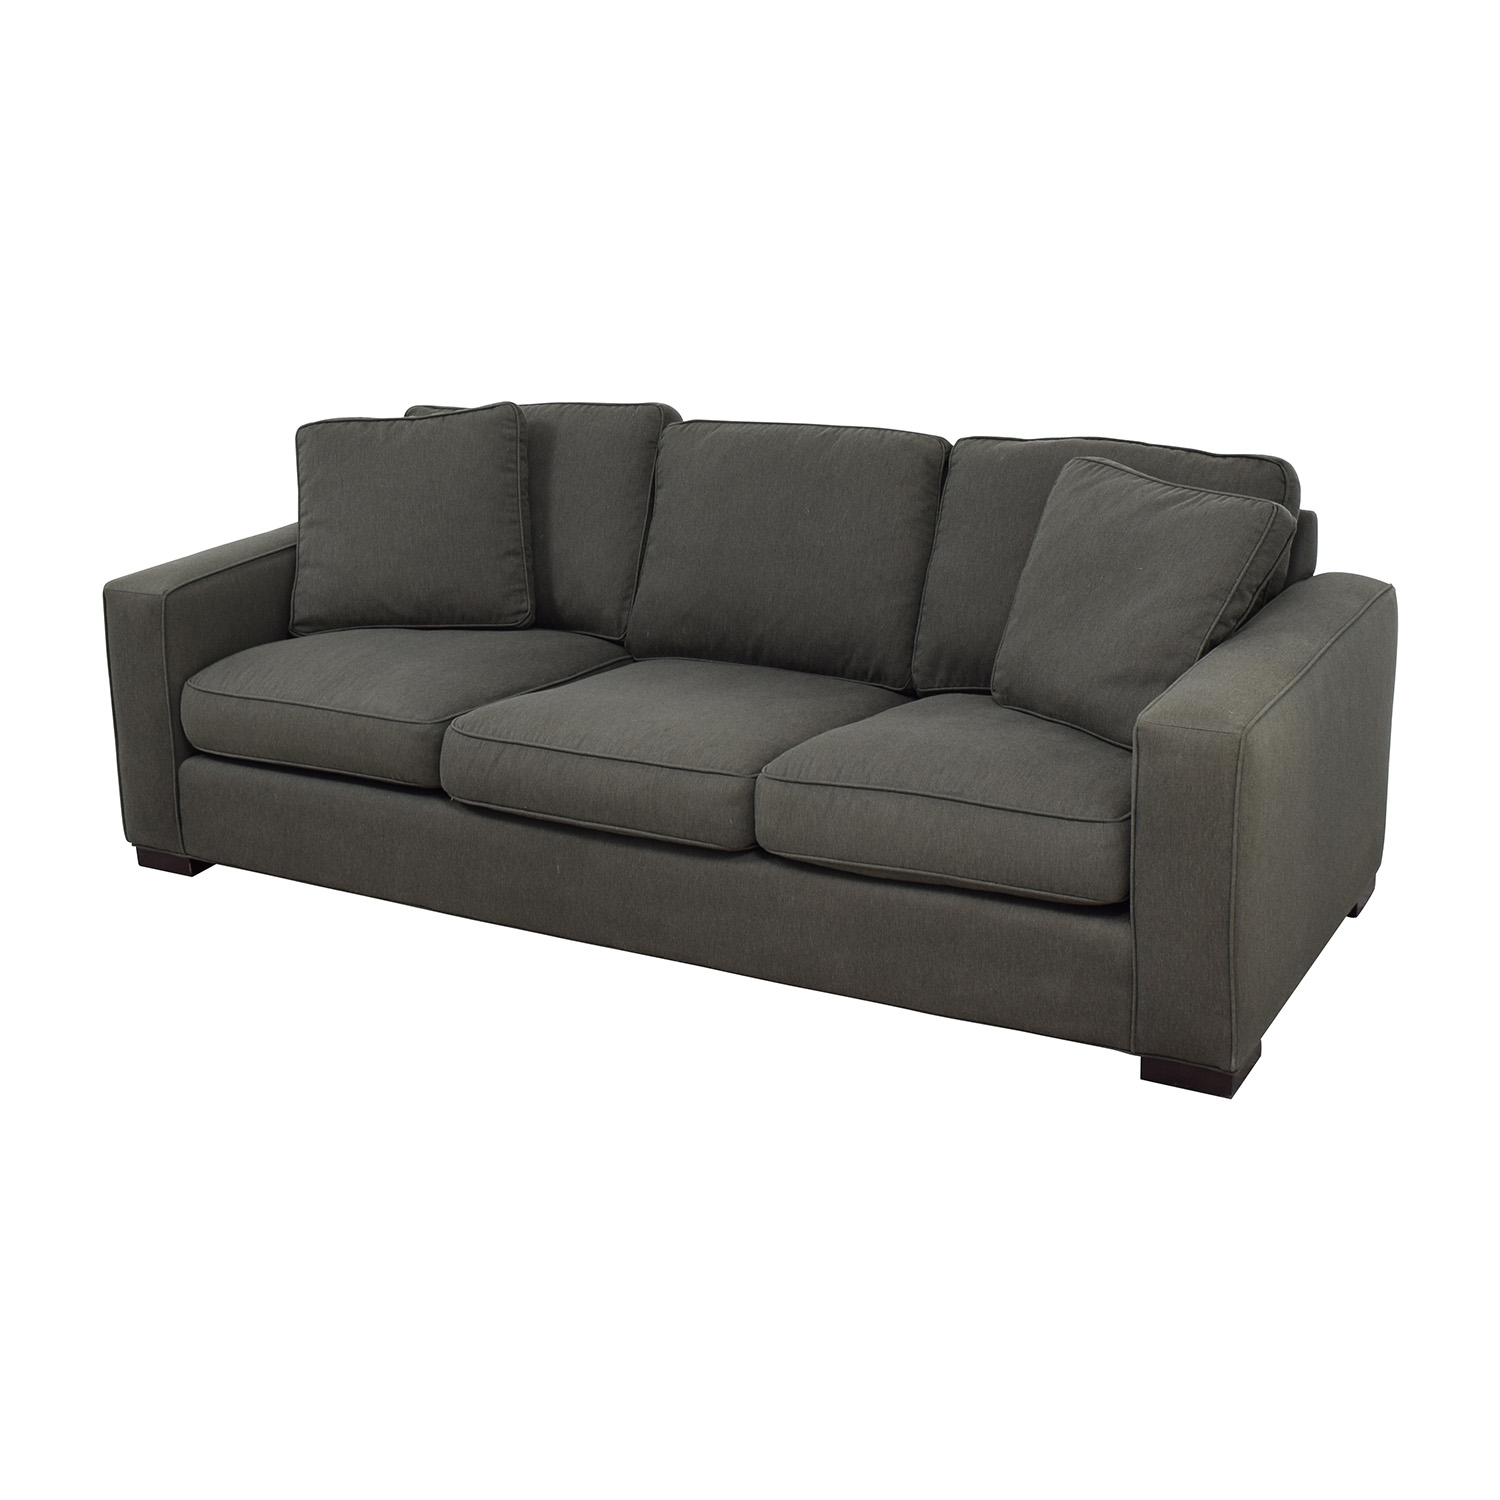 room and board sofas sectionals light colored leather 49 off metro sofa in charcoal